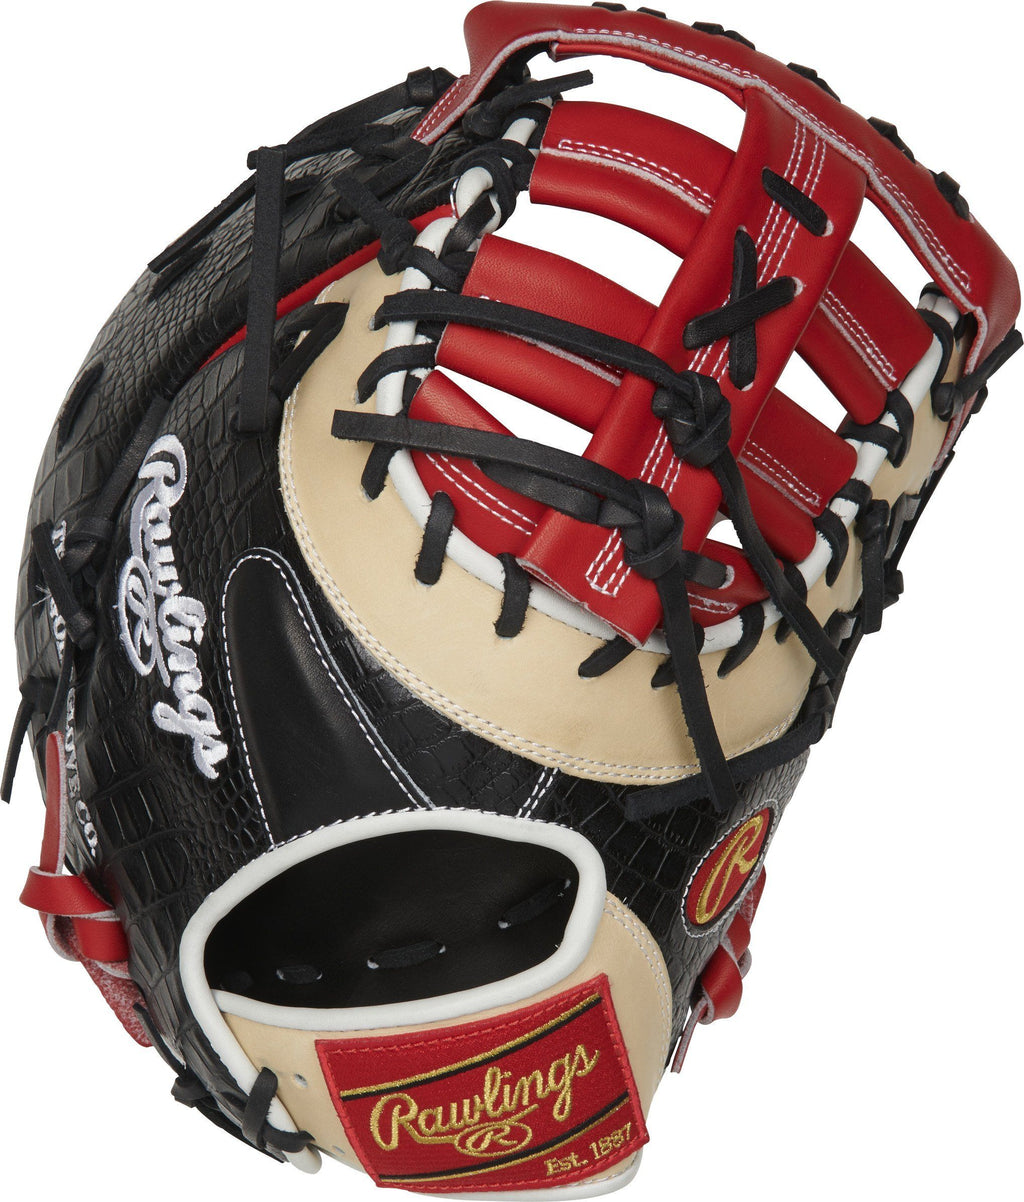 "Rawlings Heart of the Hide ColorSync 4.0 13"" First Base Mitt: PRODCTSCC"